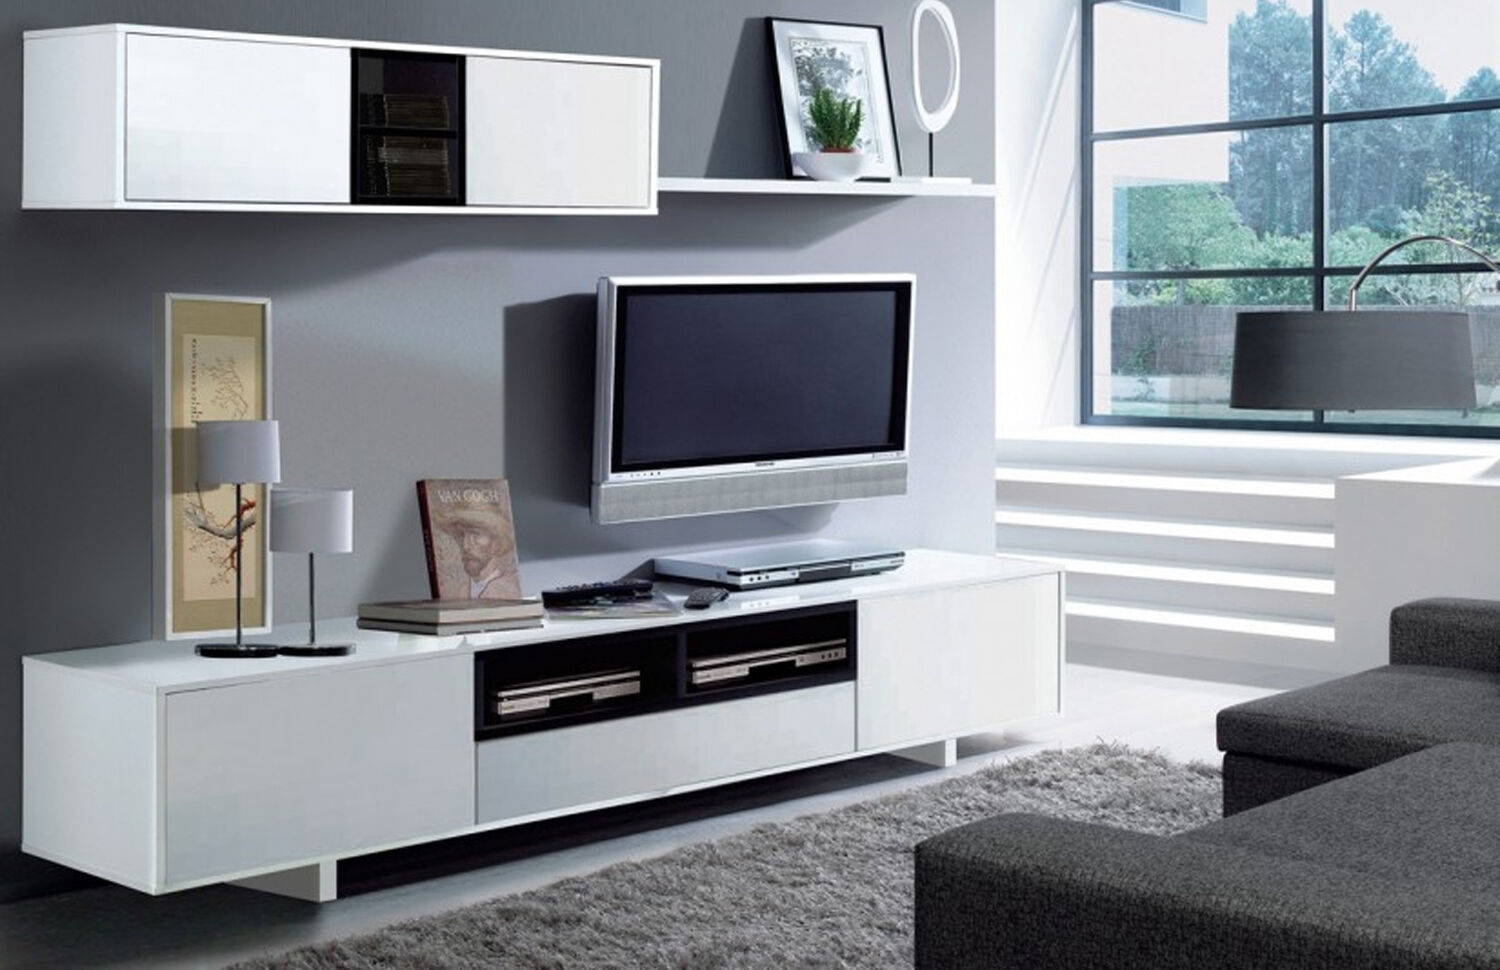 Mueble de comedor salon moderno libreria sal n tv blanco for Mueble salon moderno blanco